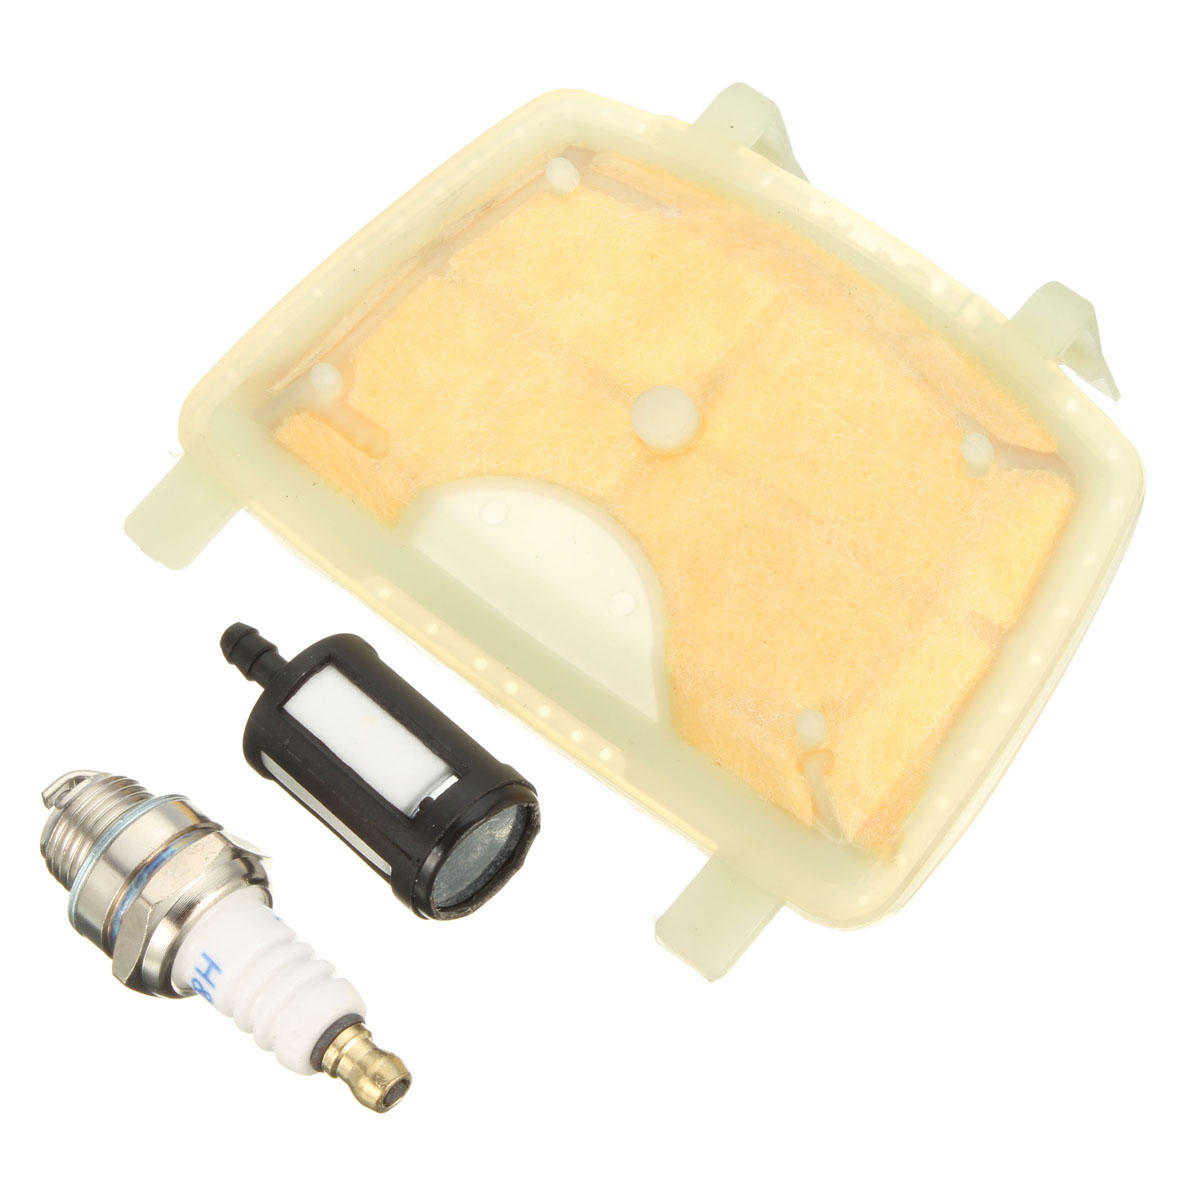 Air Fuel Filter Spark Plug Kit For STIHL MS171 MS181 MS211 Chain Saw